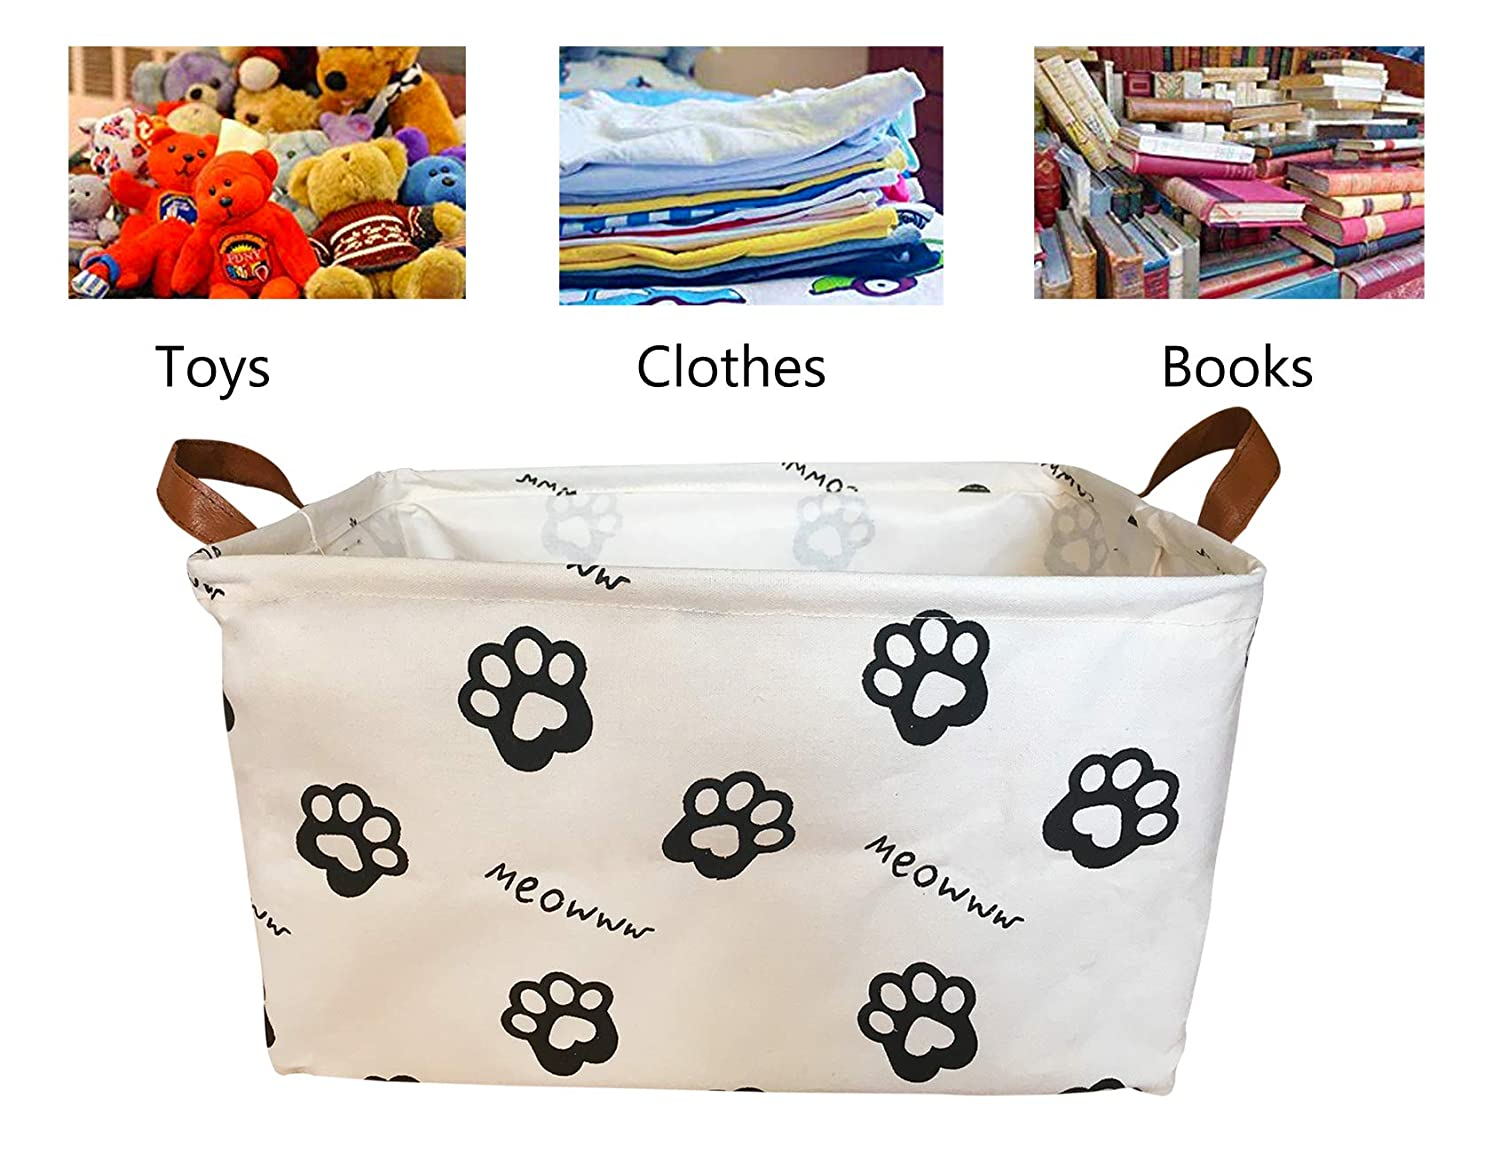 Closet Kids Toys Letter /& Laundry SAKUYV Canvas Storage Bins Toy Basket Collapsible Box Chest Organizer Water-resistant Nursery for edroom